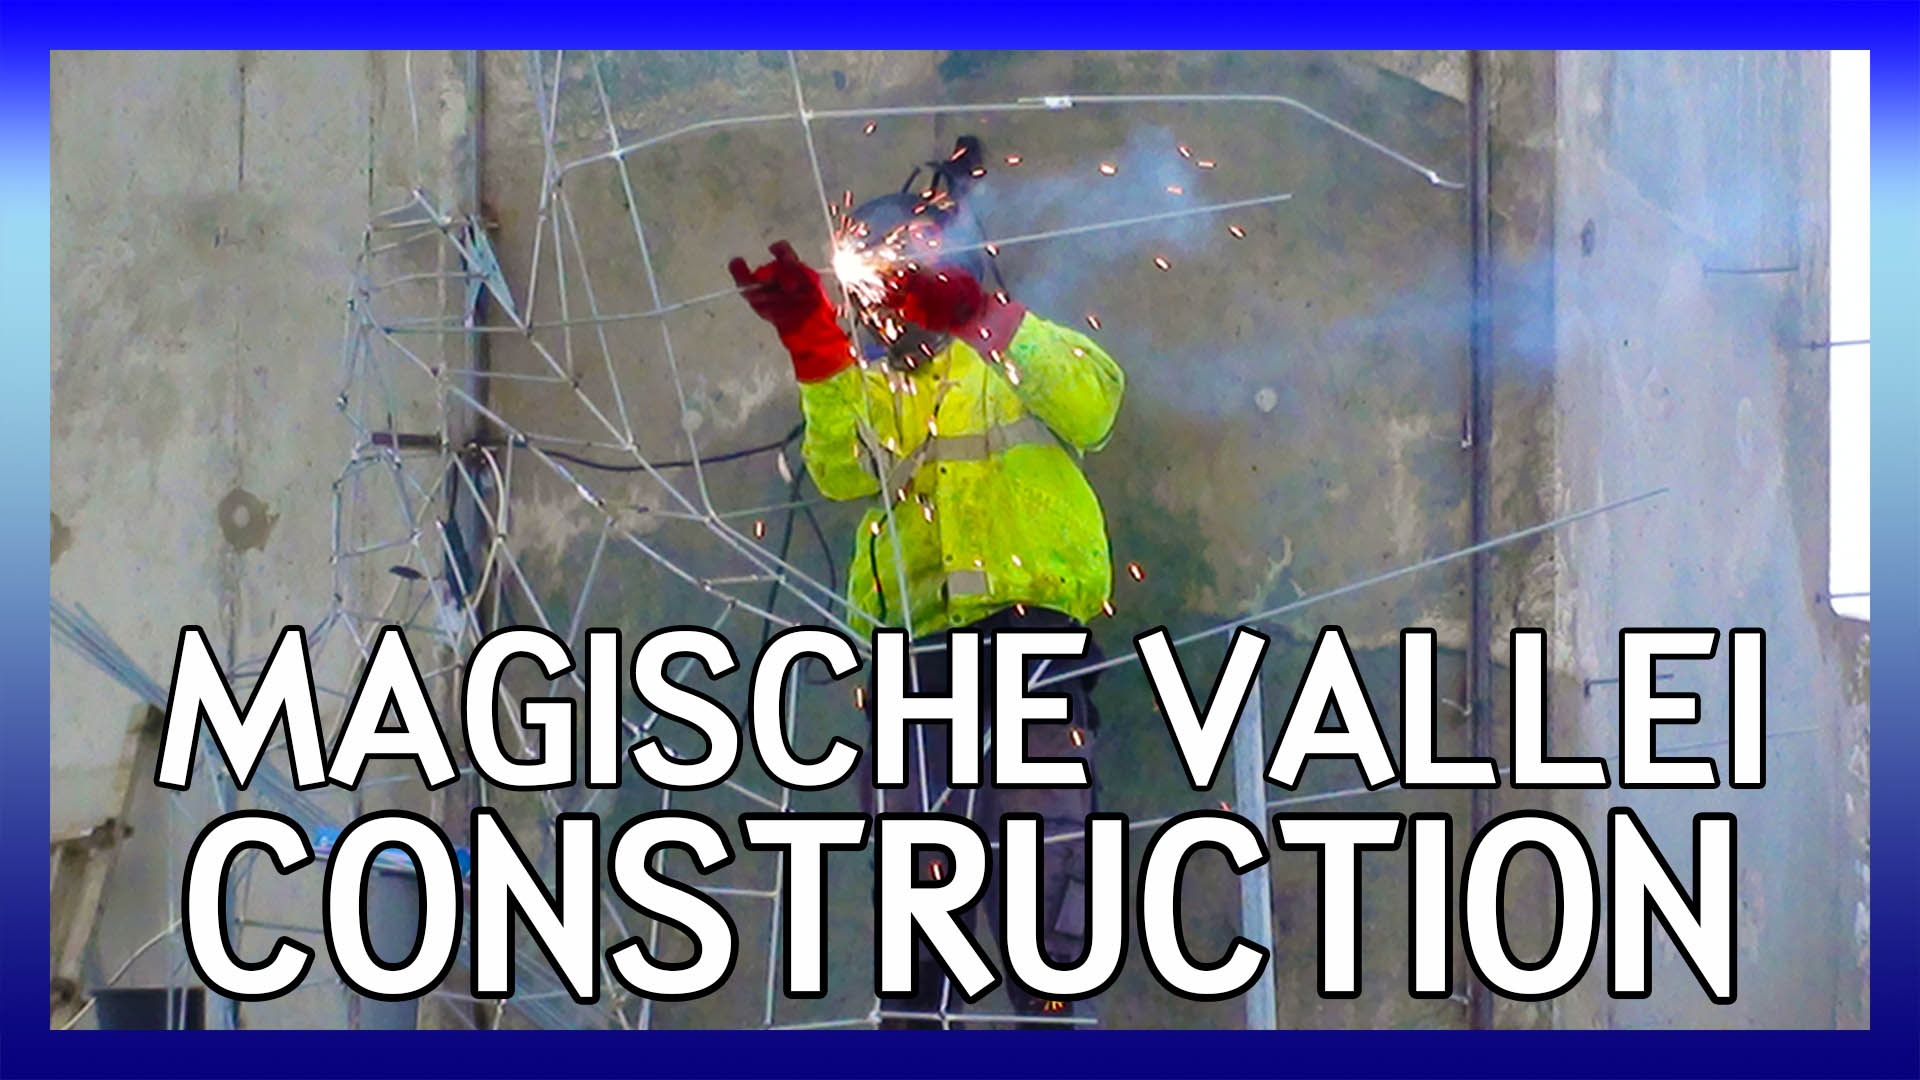 Magische Vallei Construction Tour video